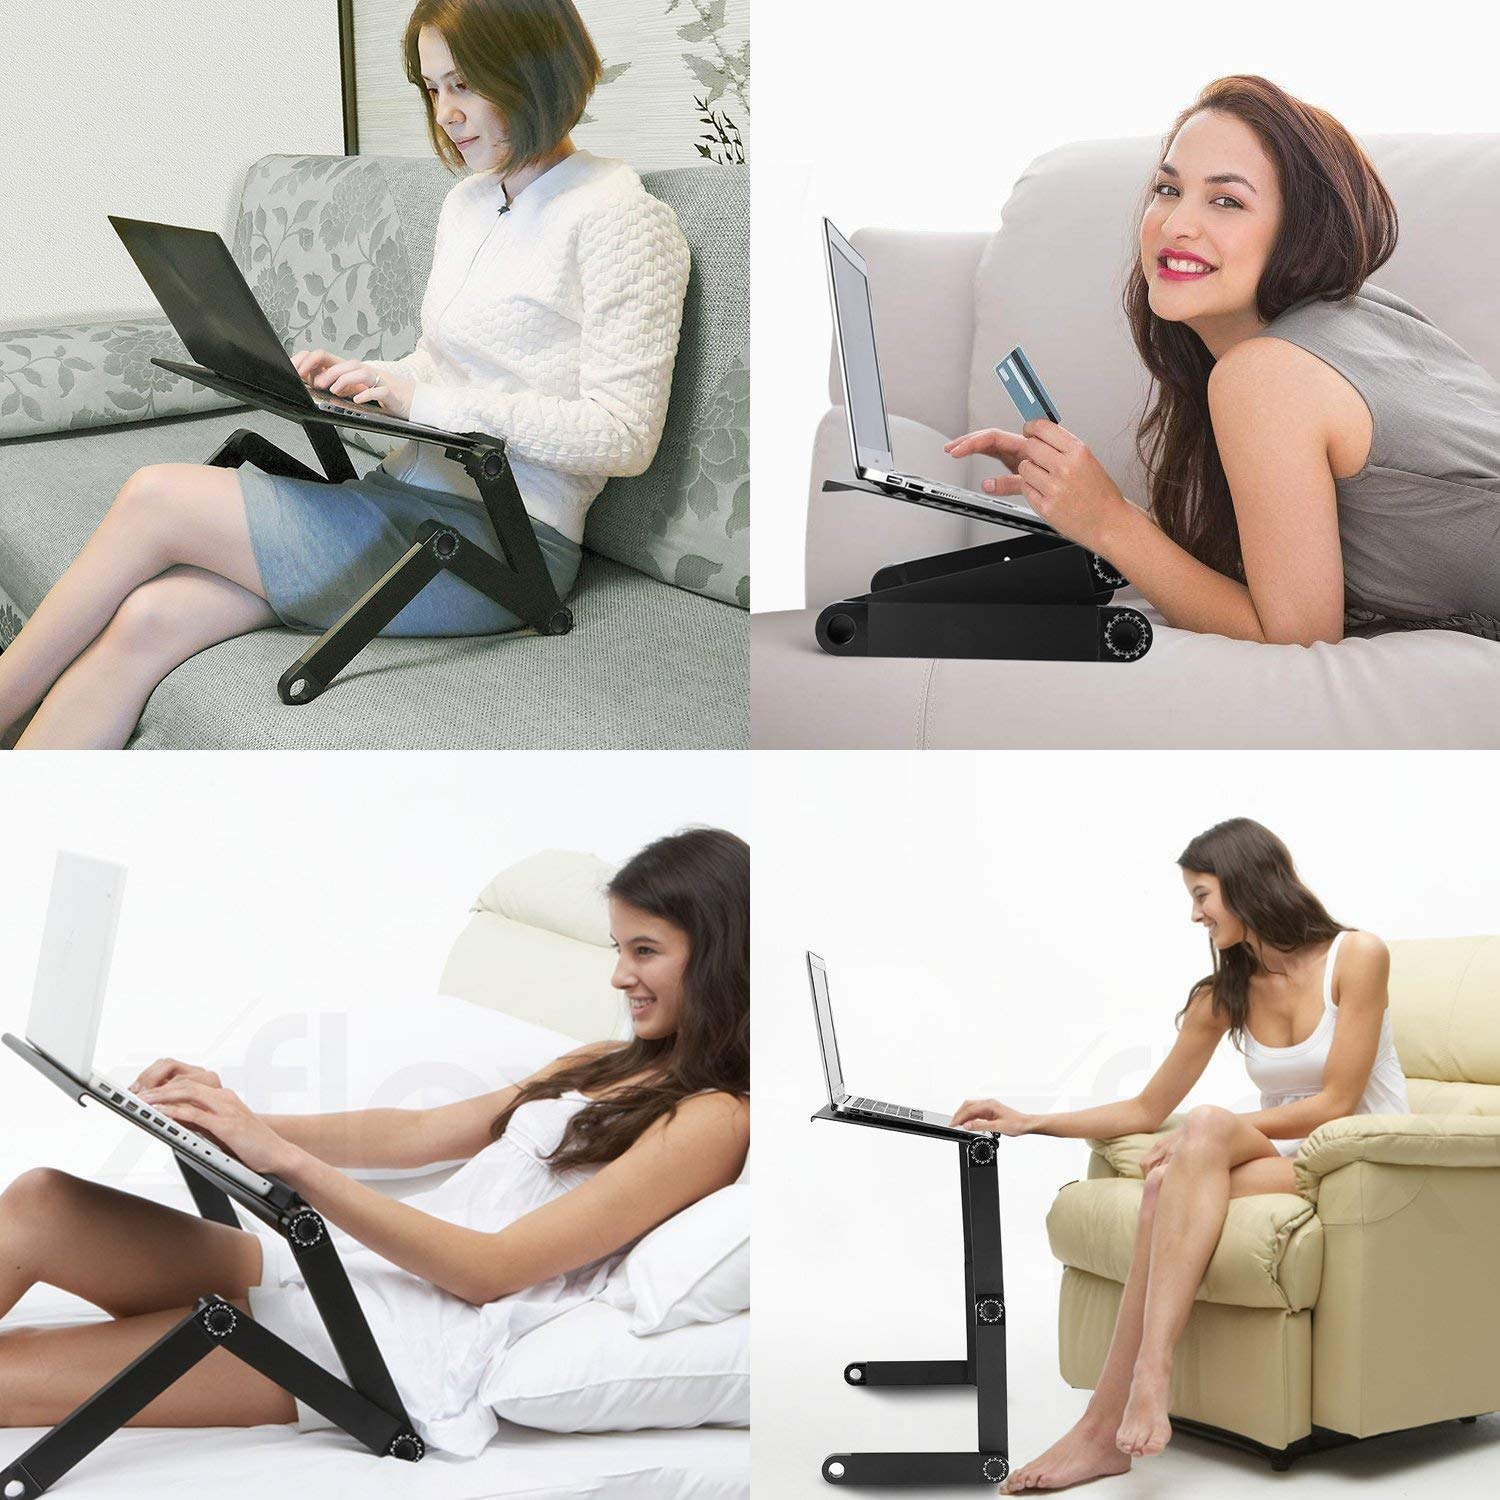 RAINBEAN Adjustable Laptop Table Stand for Bed,Portable Vented Lap Desk with Mouse Pad Side Compatible Notebook Tablets MacBook,Foldable Tray Table for Couch and Sofa,Aluminum Ergonomics Design-Black